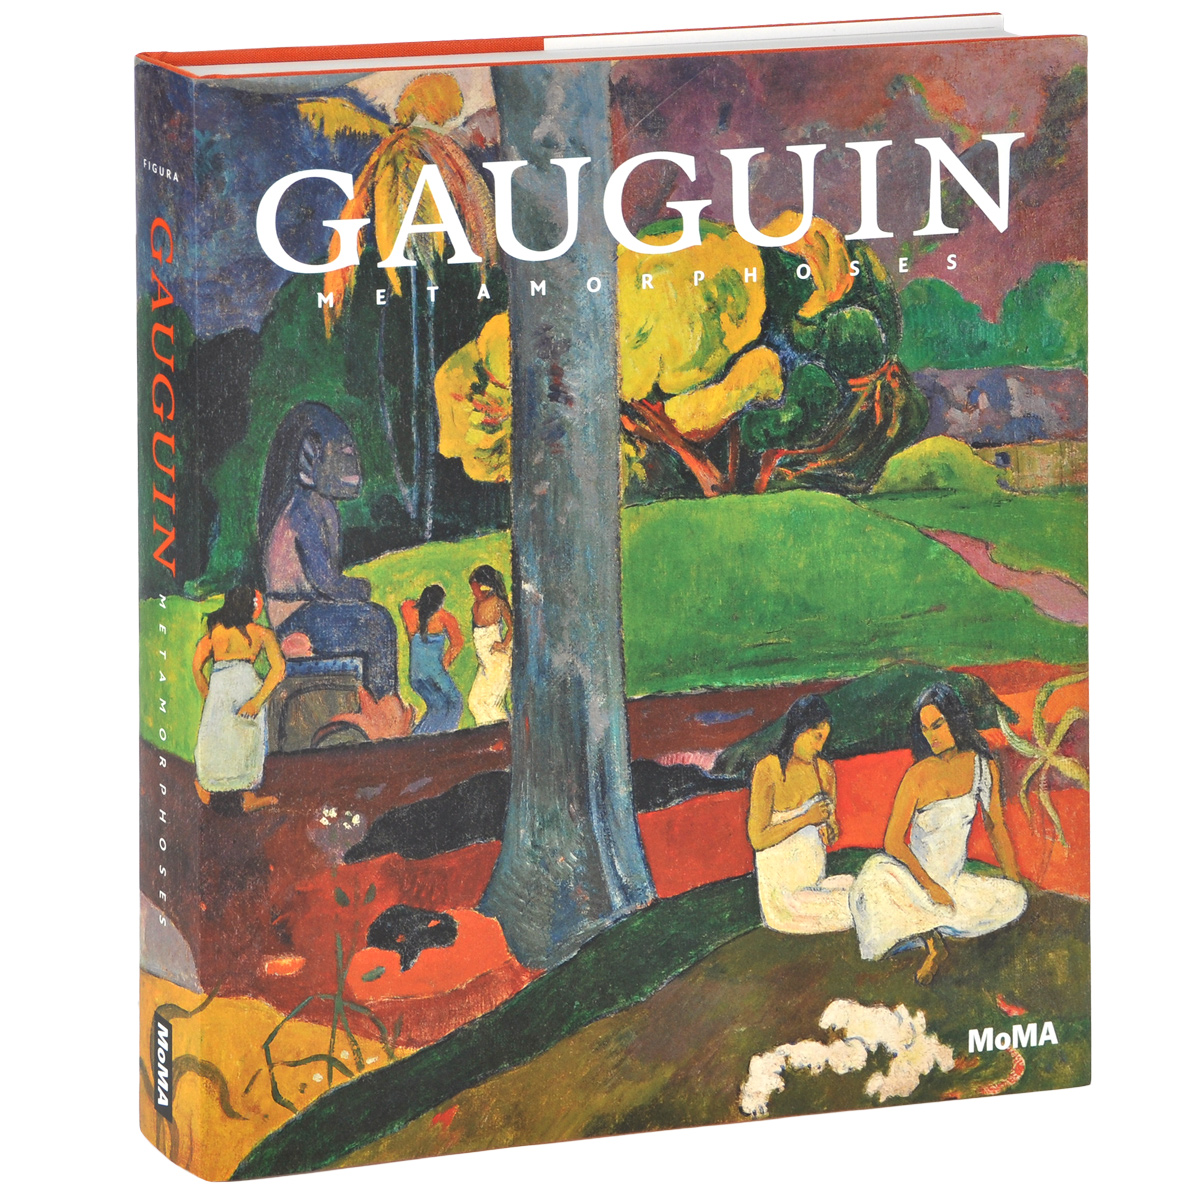 Gauguin: Metamorphoses demystifying learning traps in a new product innovation process